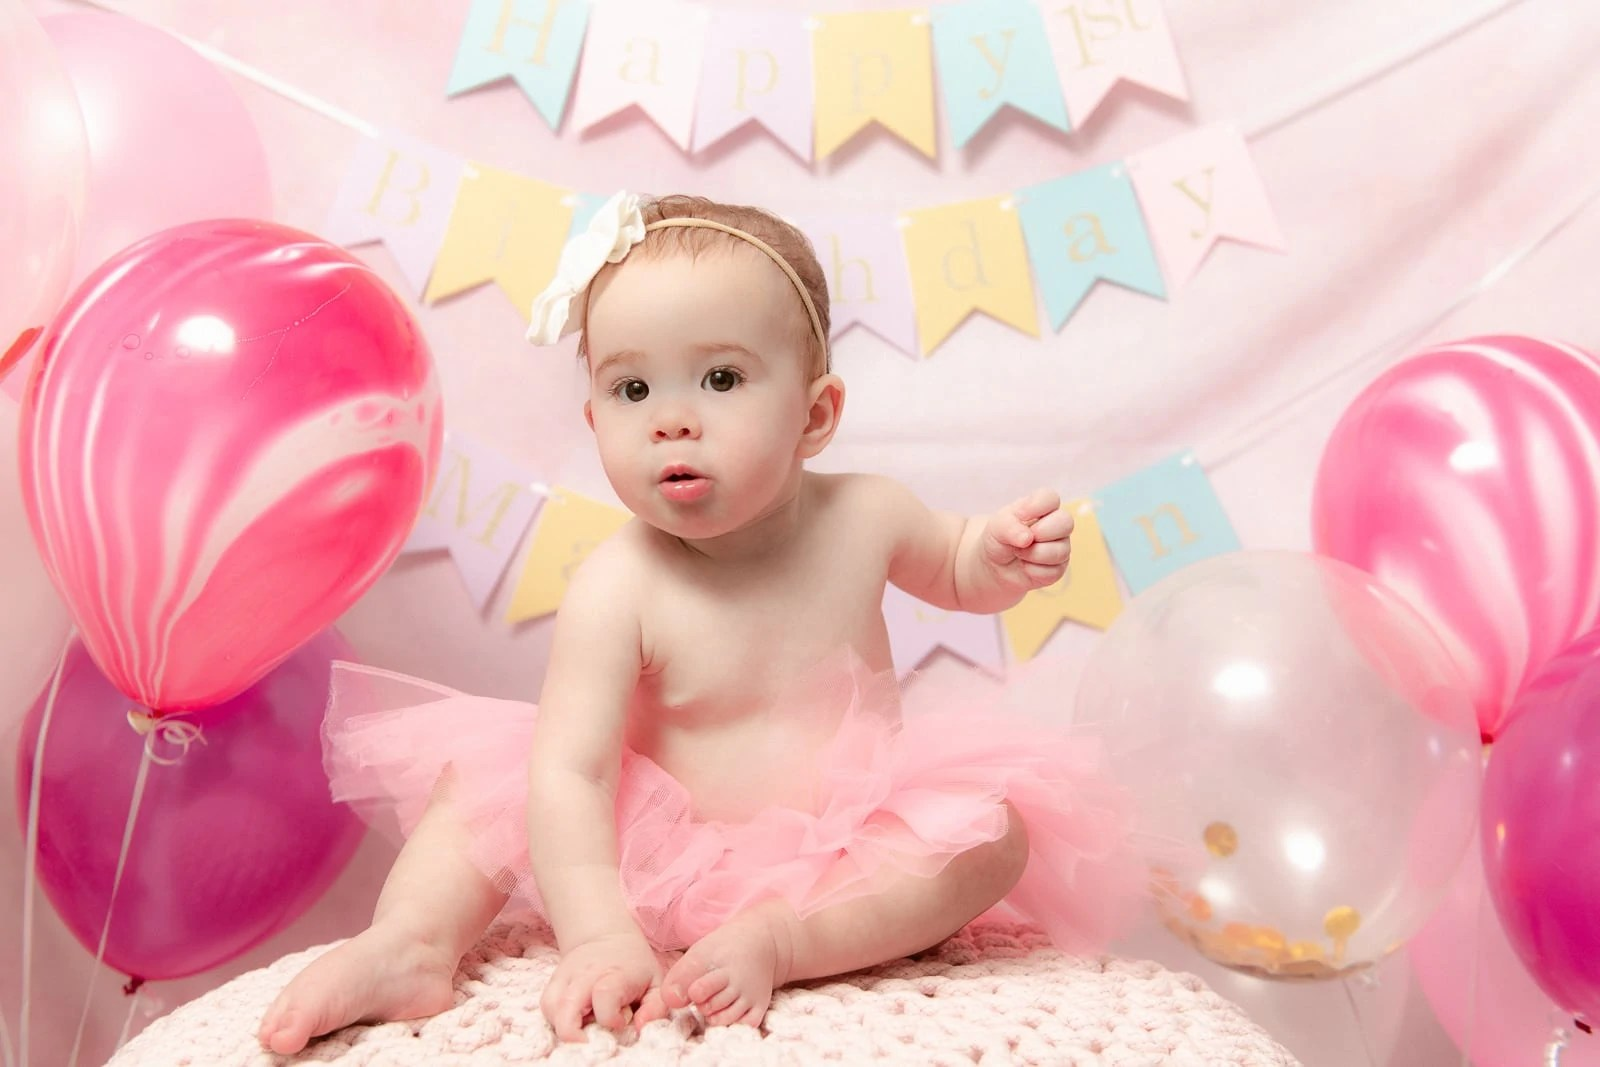 Smash the cake and first birthday baby session